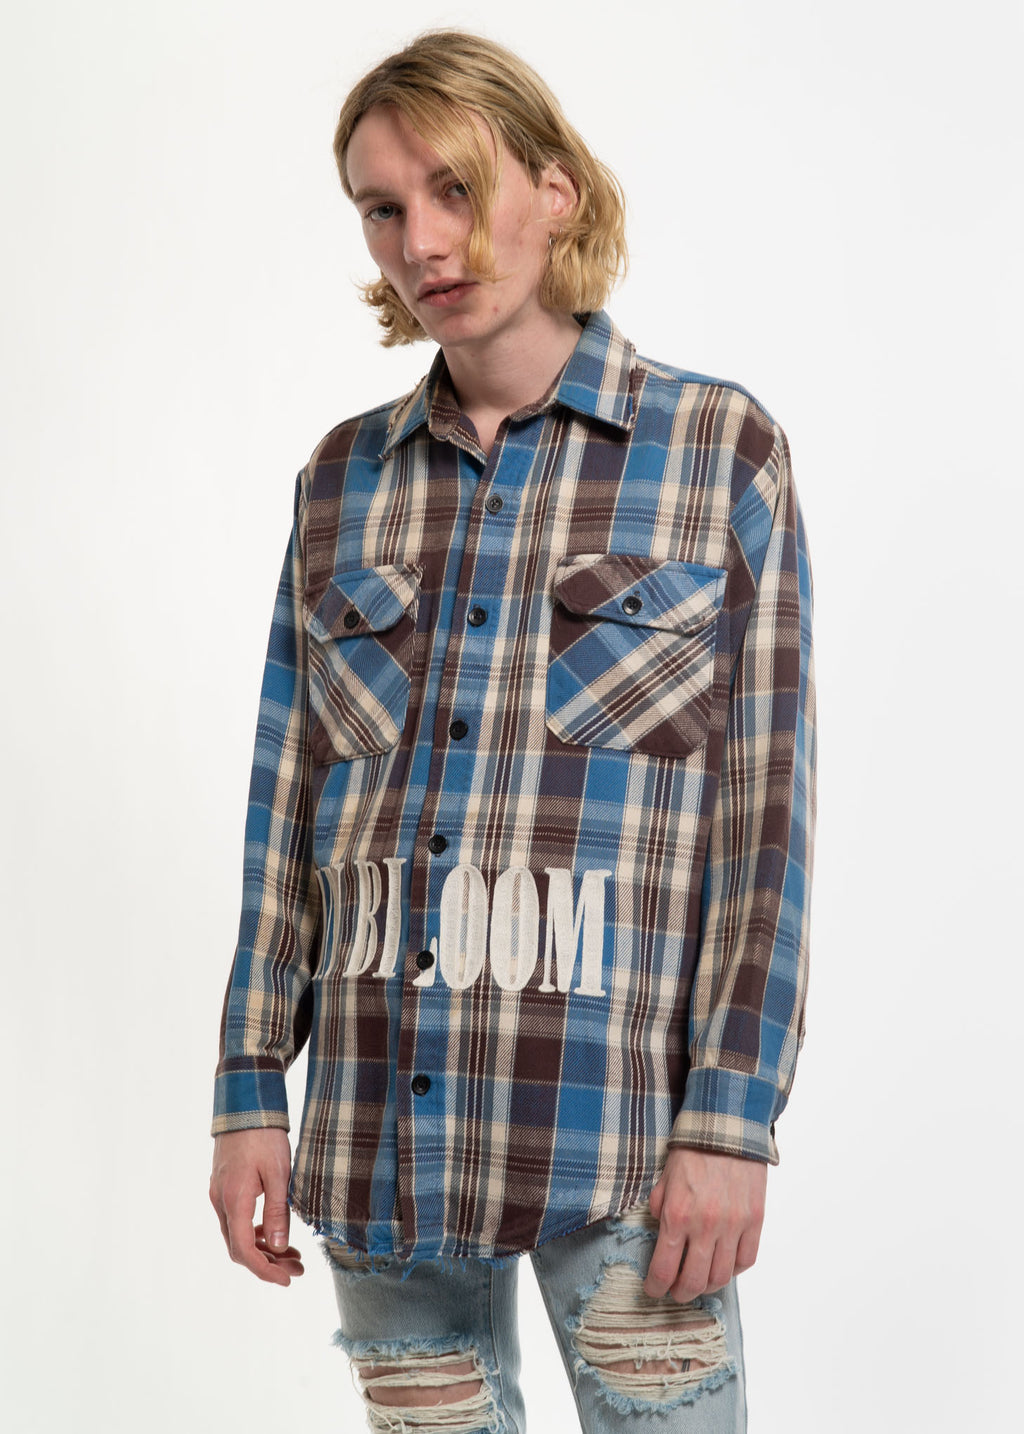 Blue Check Vintage Flannel w/ Embroidery 1